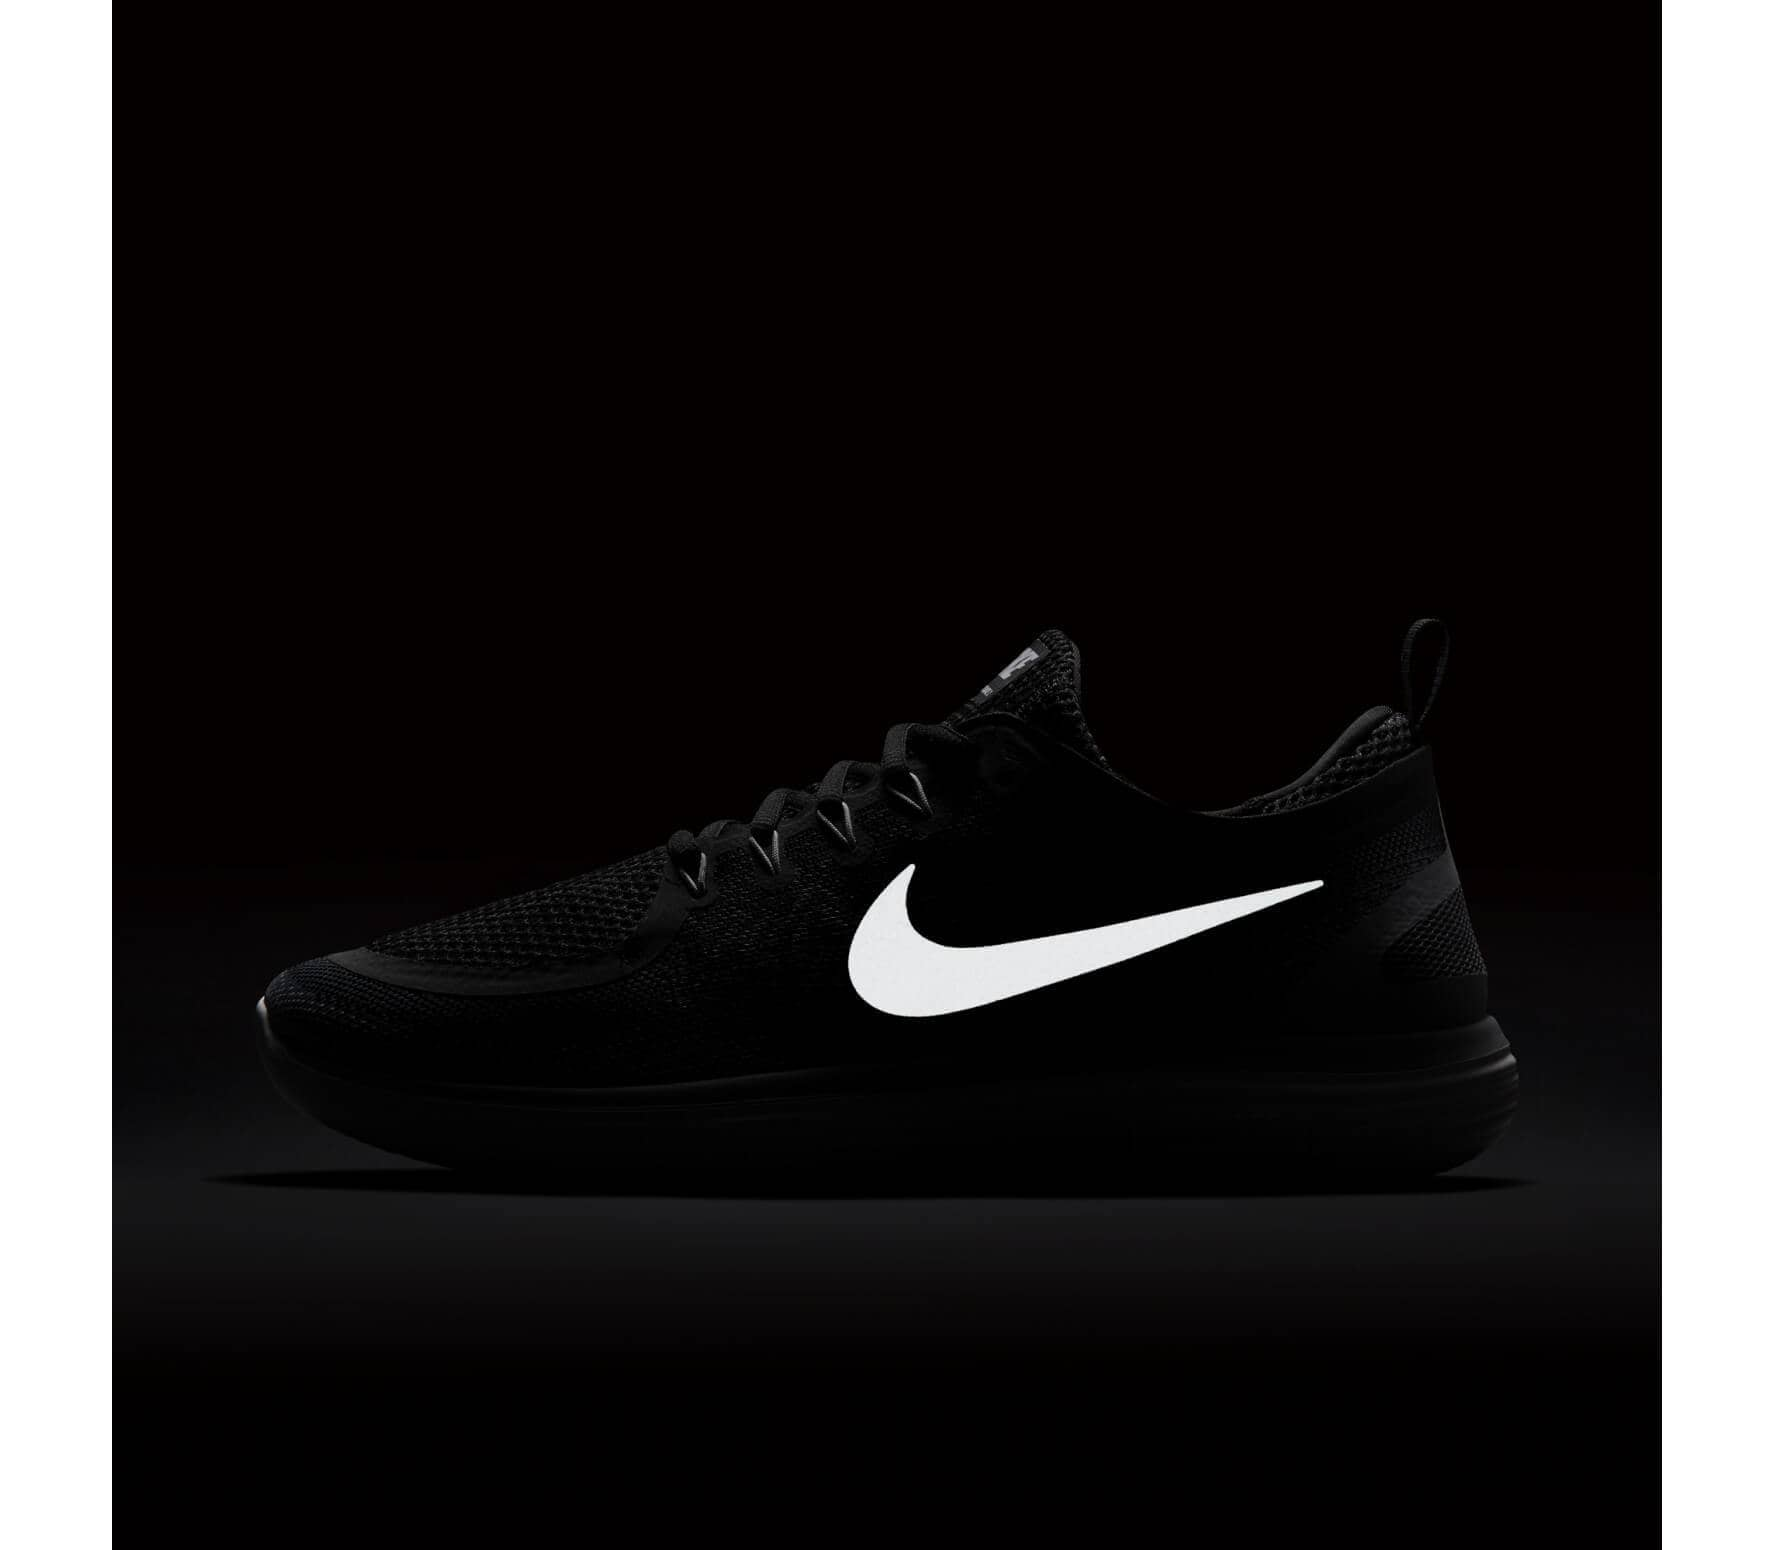 newest cfa2b 2a639 Nike - Free RN Distance 2 chaussures de running pour hommes (noir blanc)